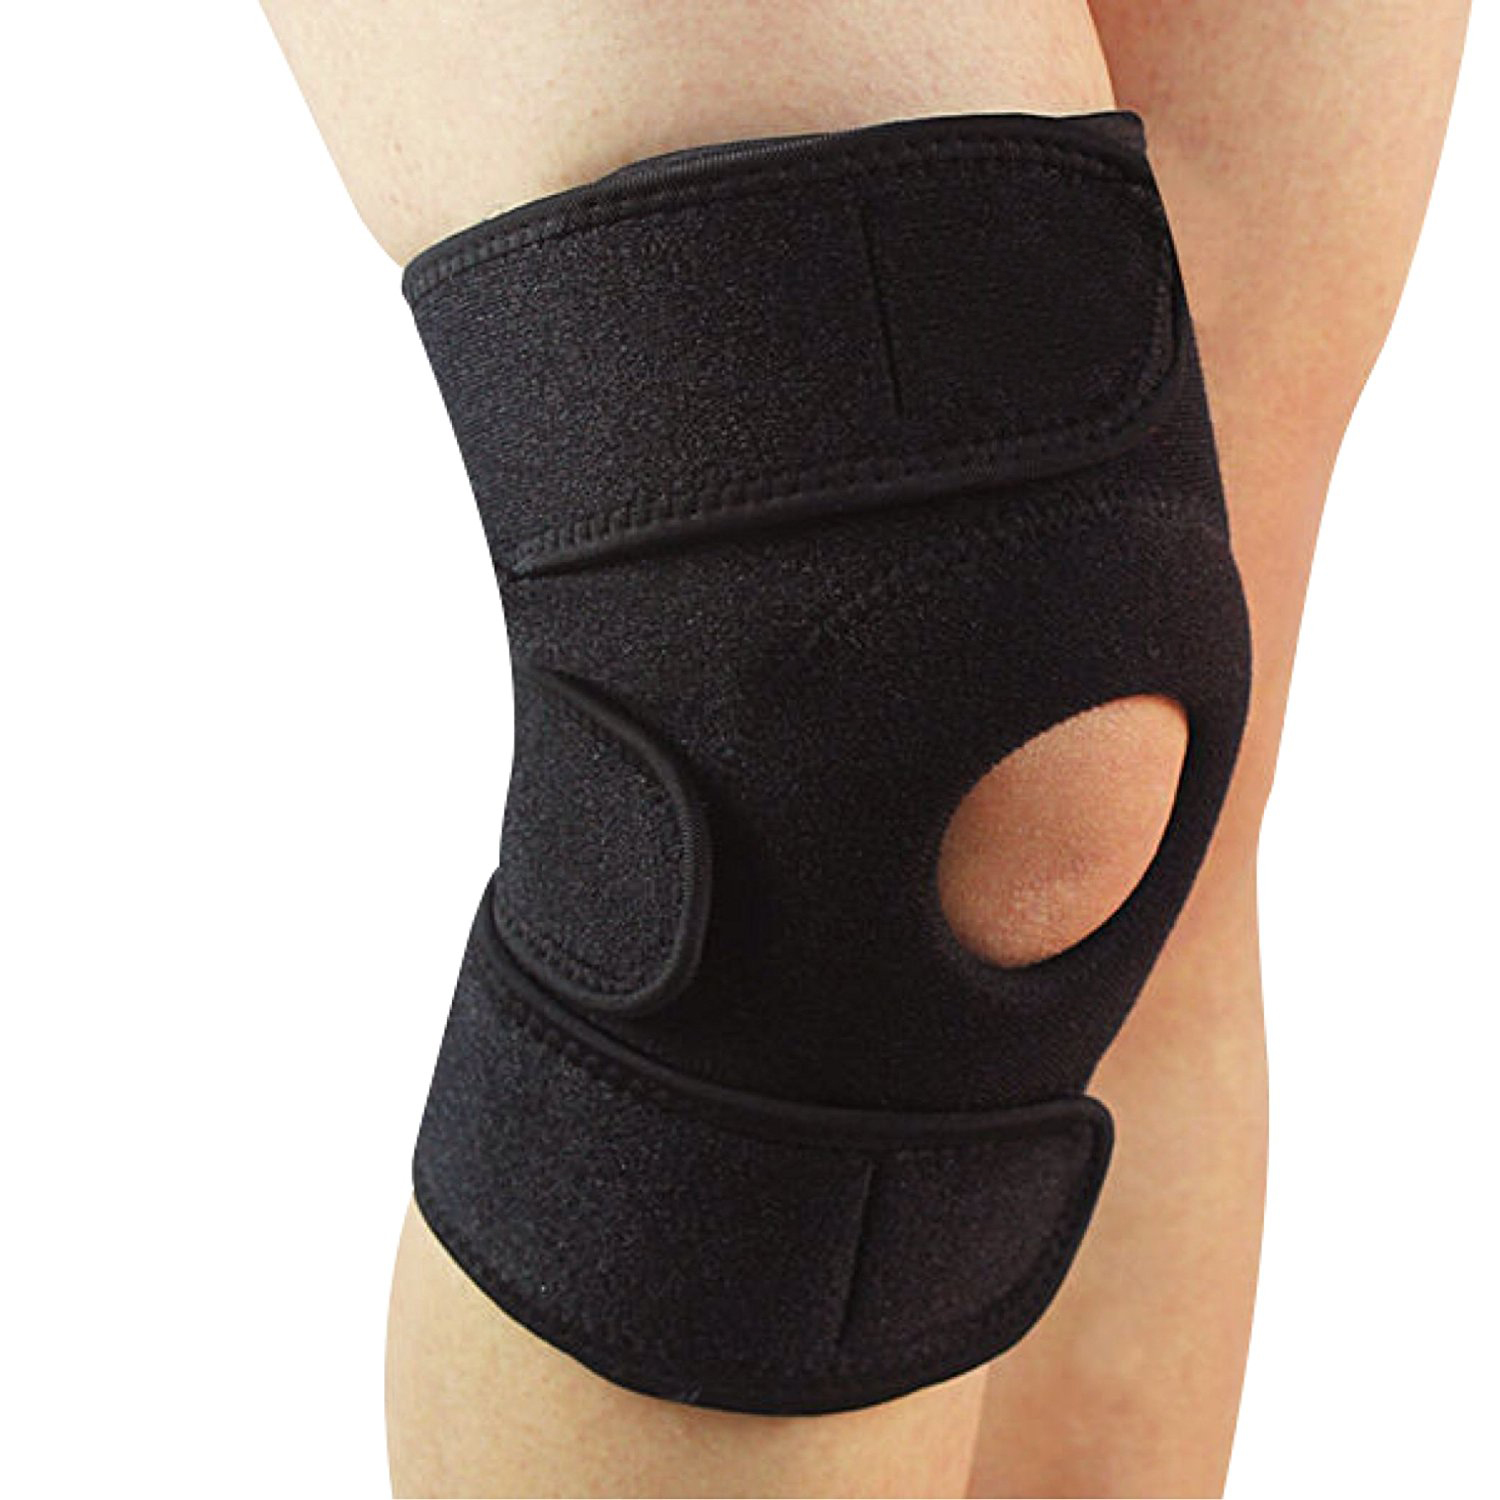 GymWar Patella Adjustable Knee Support Knee Cap Knee knee guard , Free Size  Black  1pc